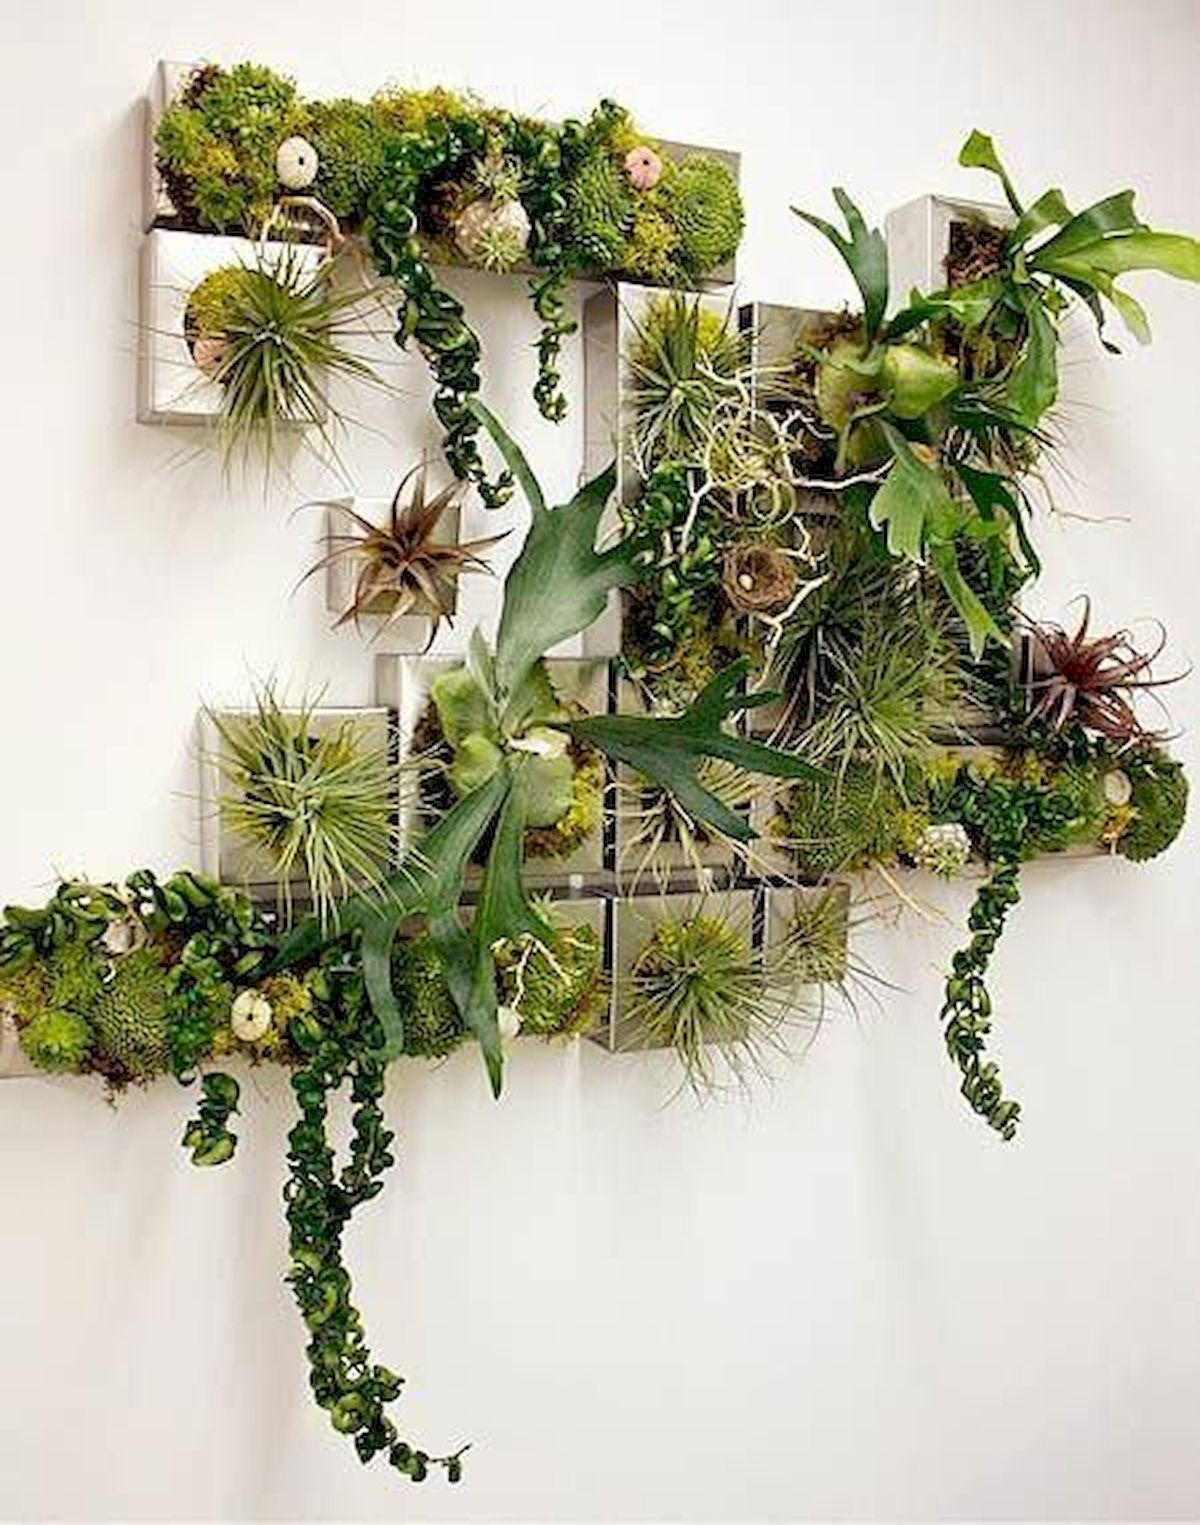 44 Fantastic Vertical Garden Ideas To Make Your Home Beautiful (37)